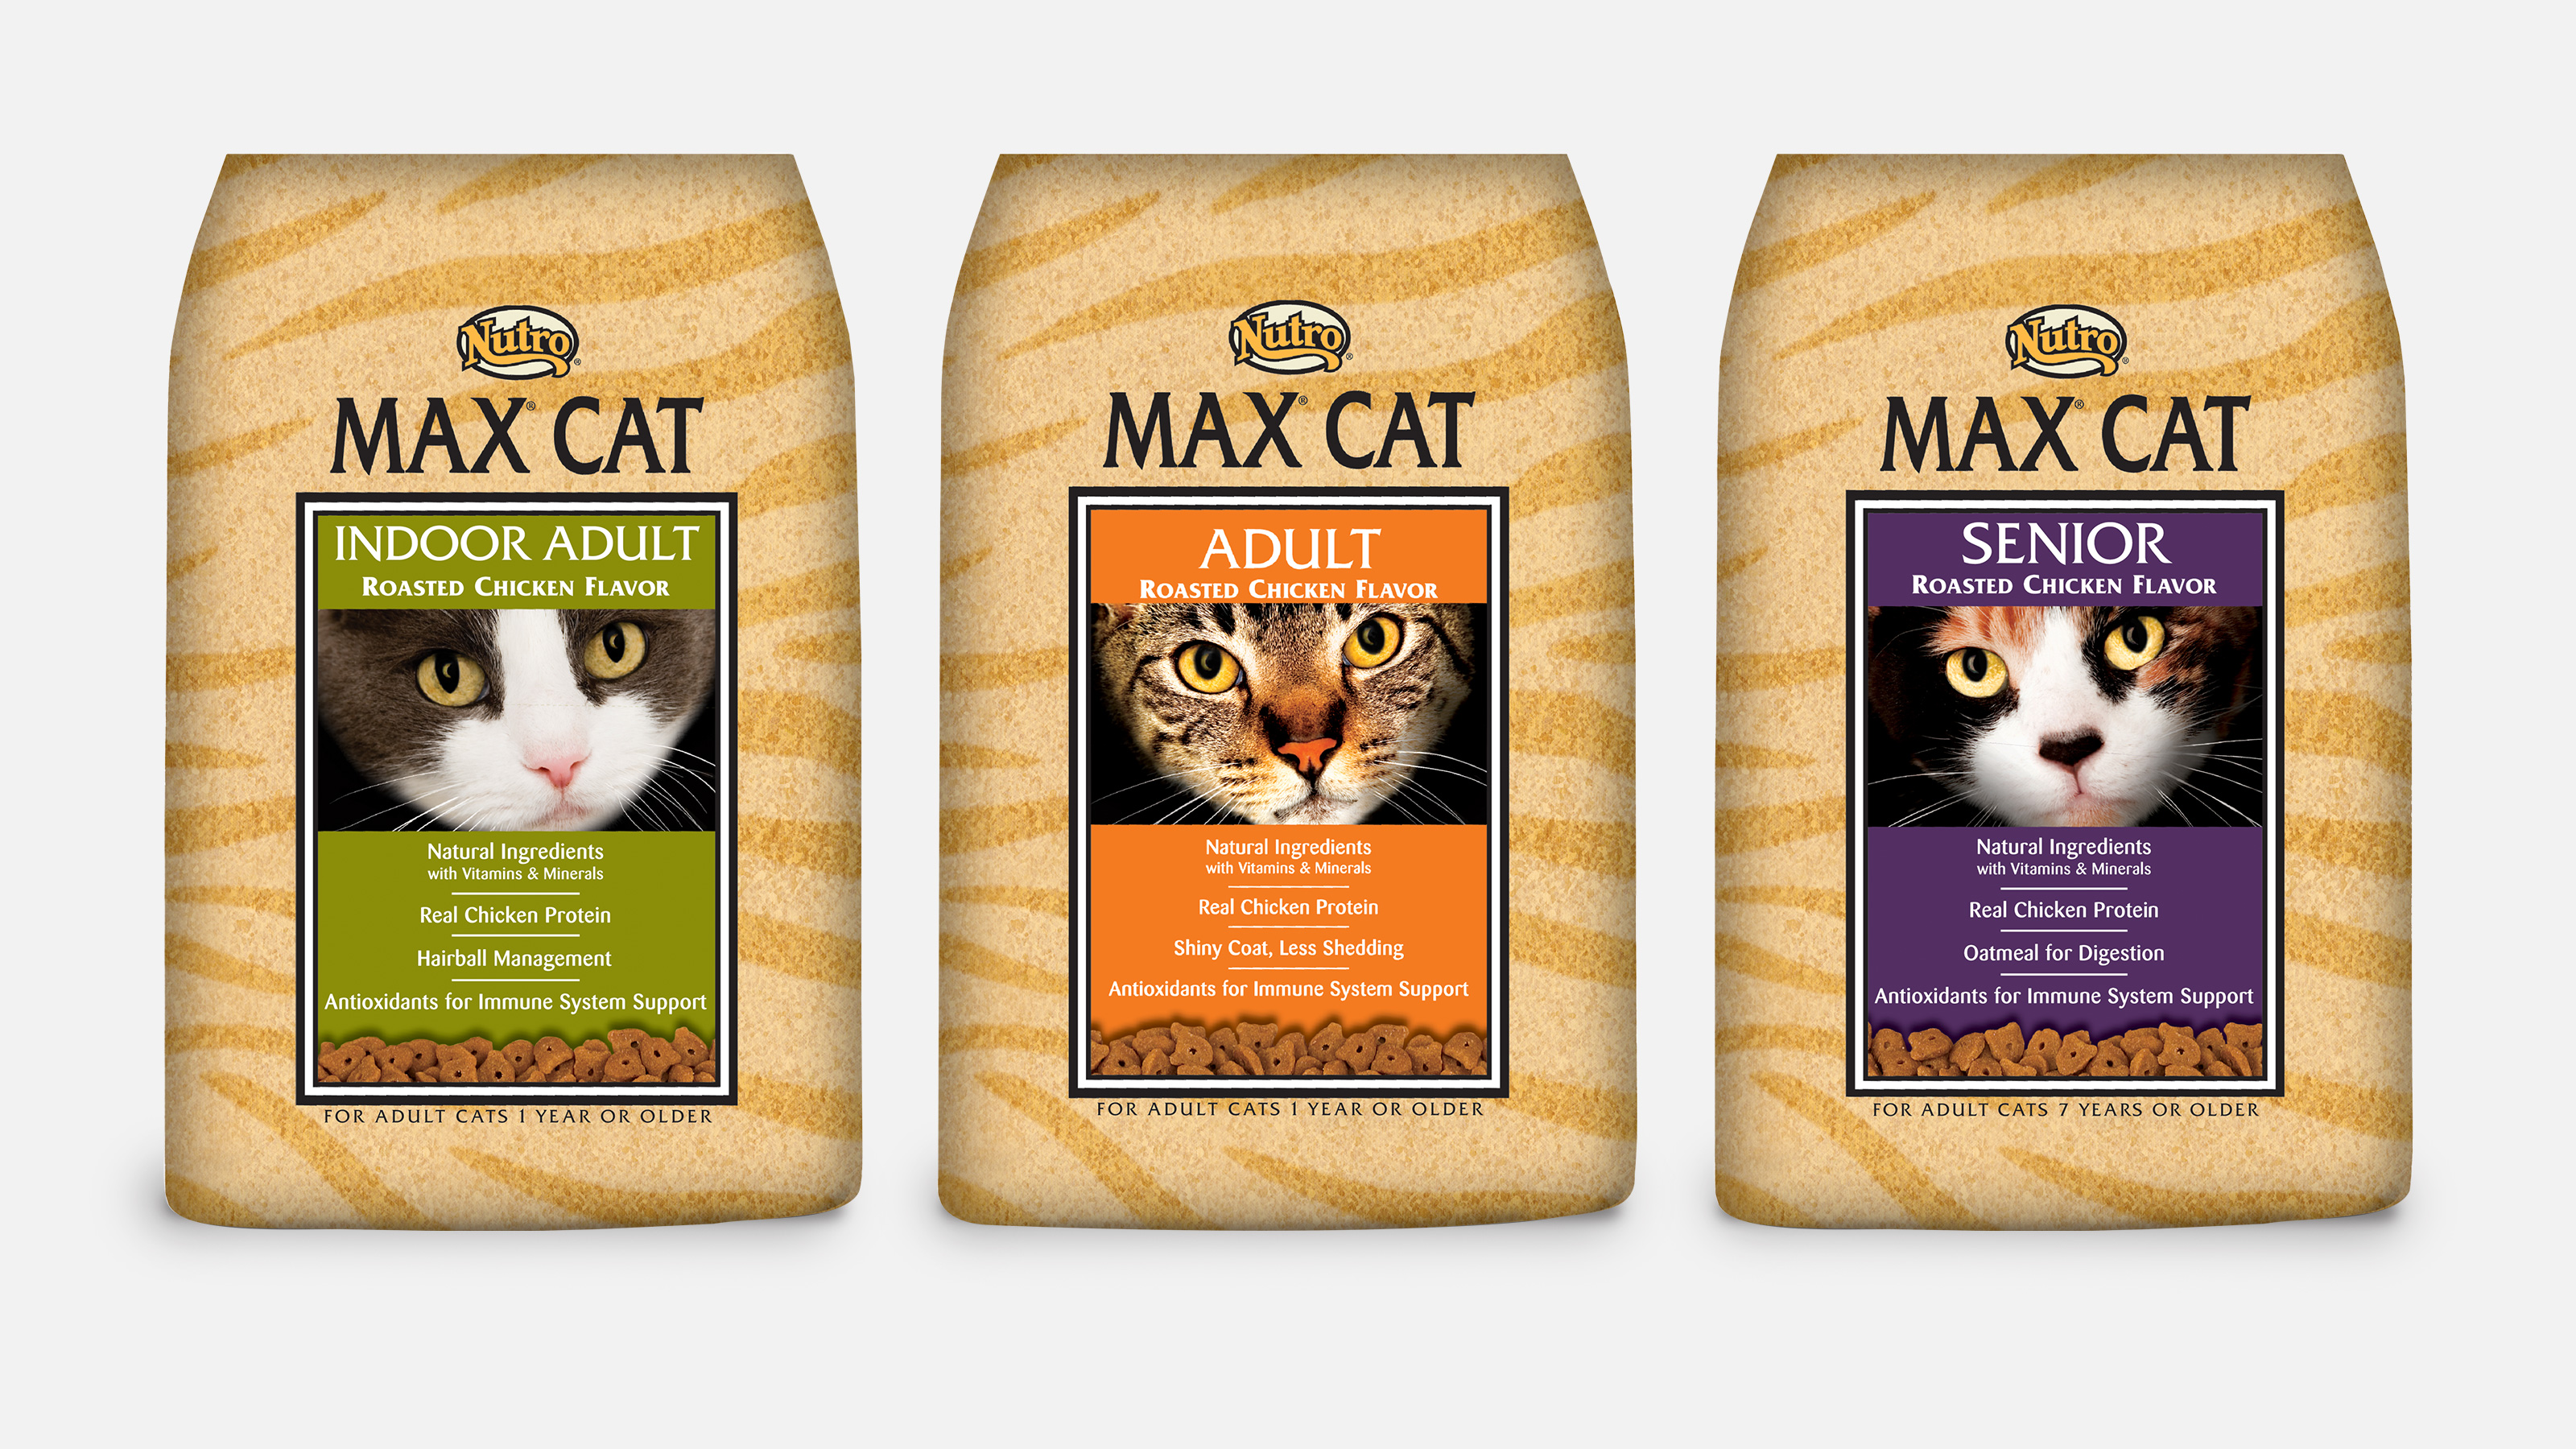 Nutro Max Cat Packaging